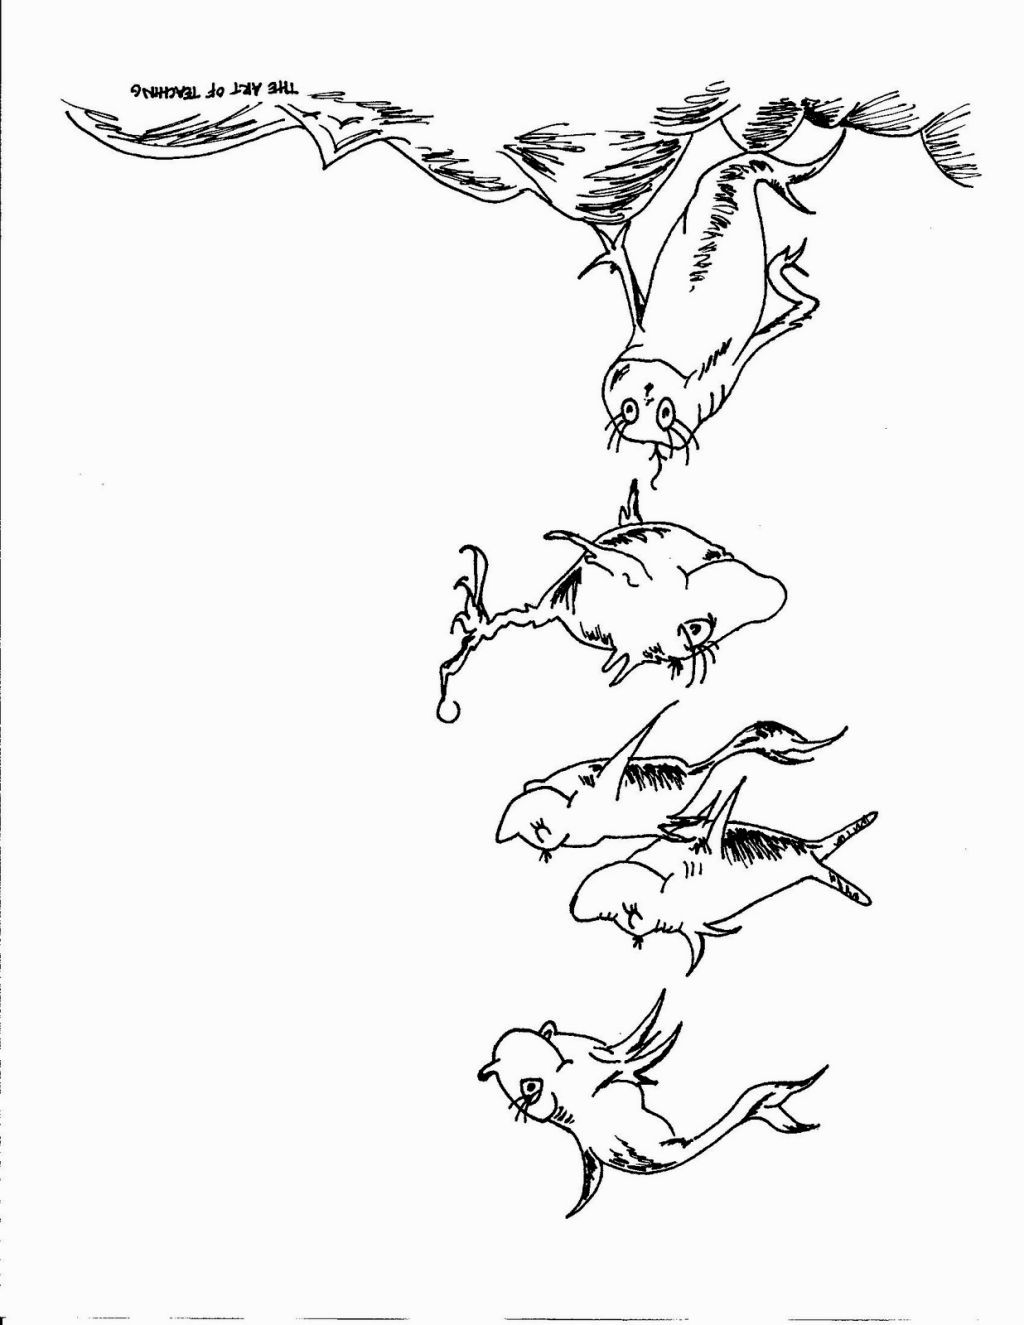 Dr Seuss Coloring Pages One Fish Two Fish Dr Seuss Coloring Pages Fish Coloring Page One Fish Two Fish